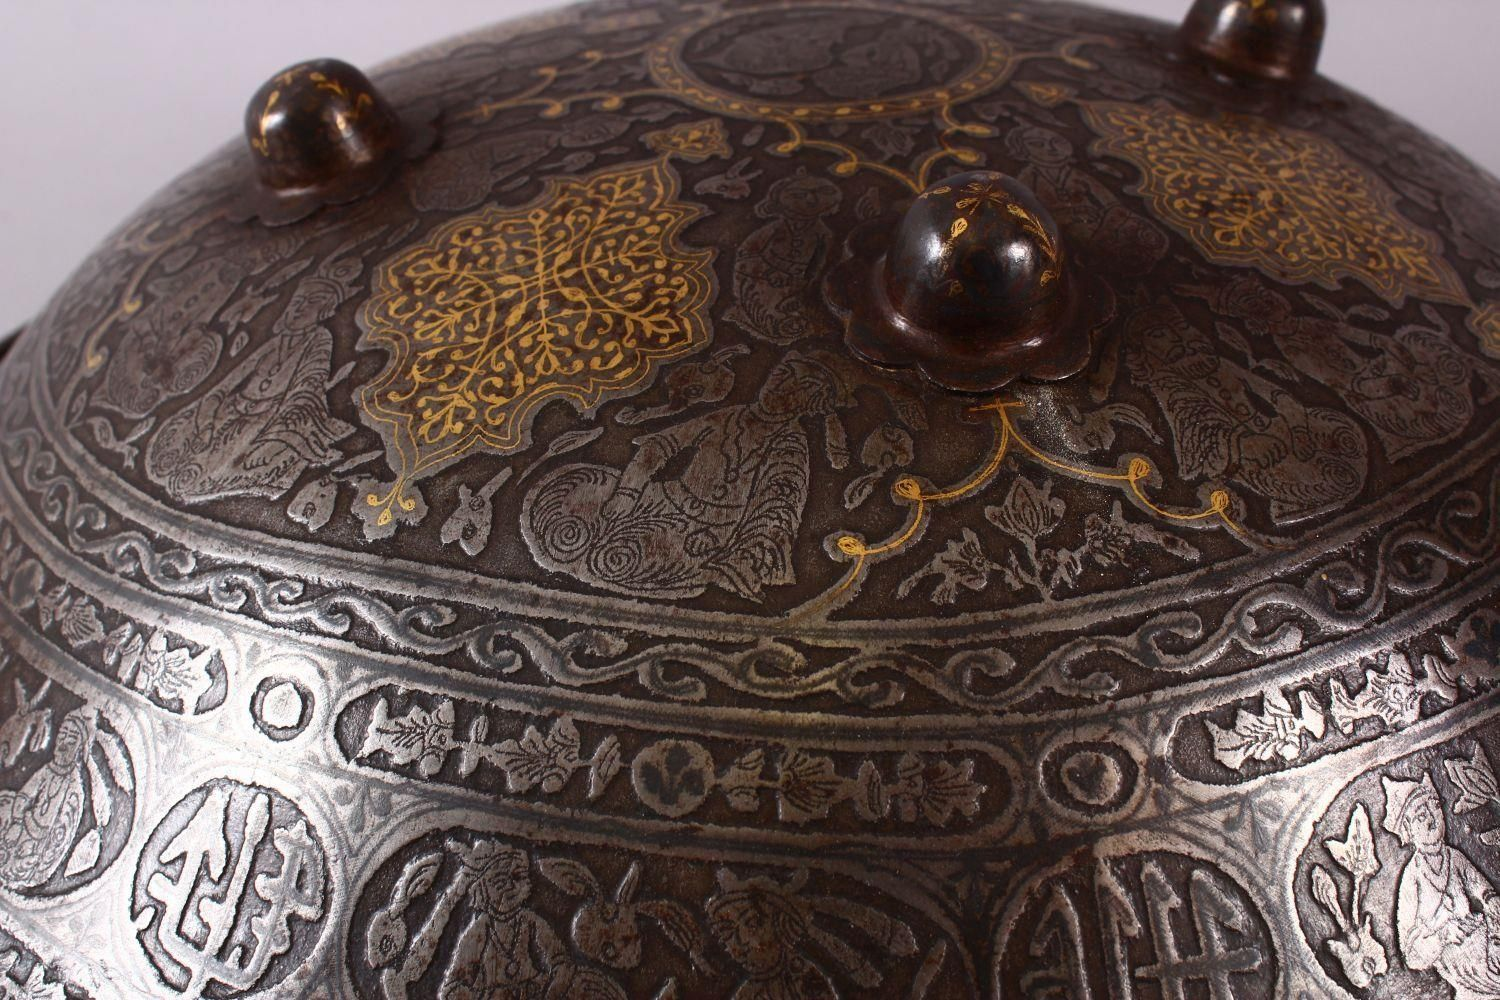 A LARGE 19TH CENTURY PERSIAN GILT DECORATED STEEL SHIELD, with carved decoration of figures, bands - Image 7 of 12